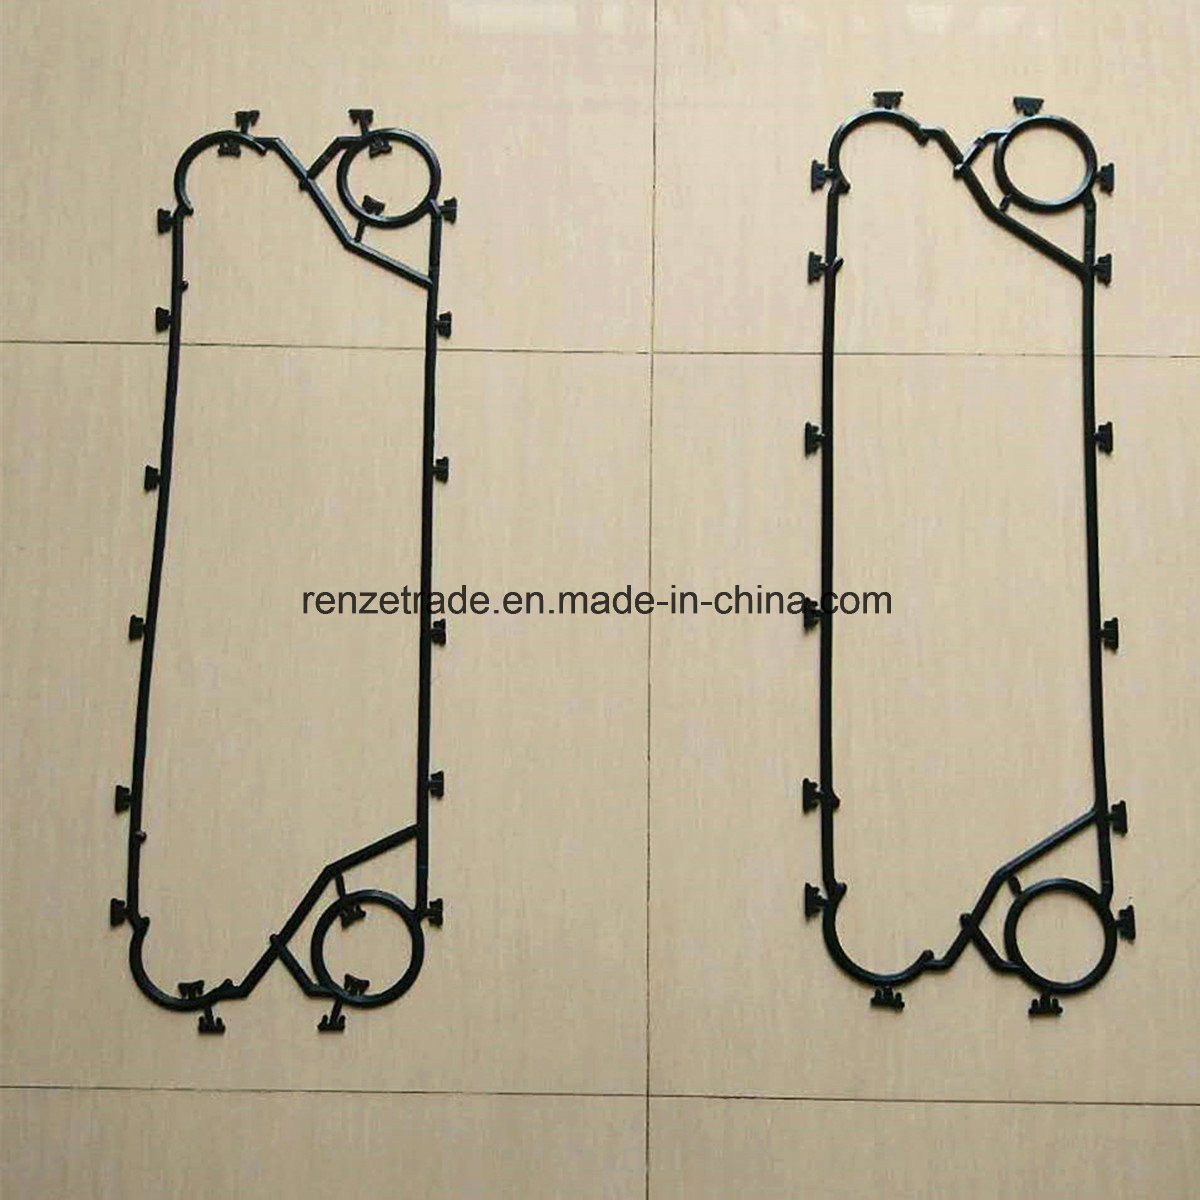 Supply Sondex Plate Heat Exchanger Spare Parts Flow Channel Sealing Gasket